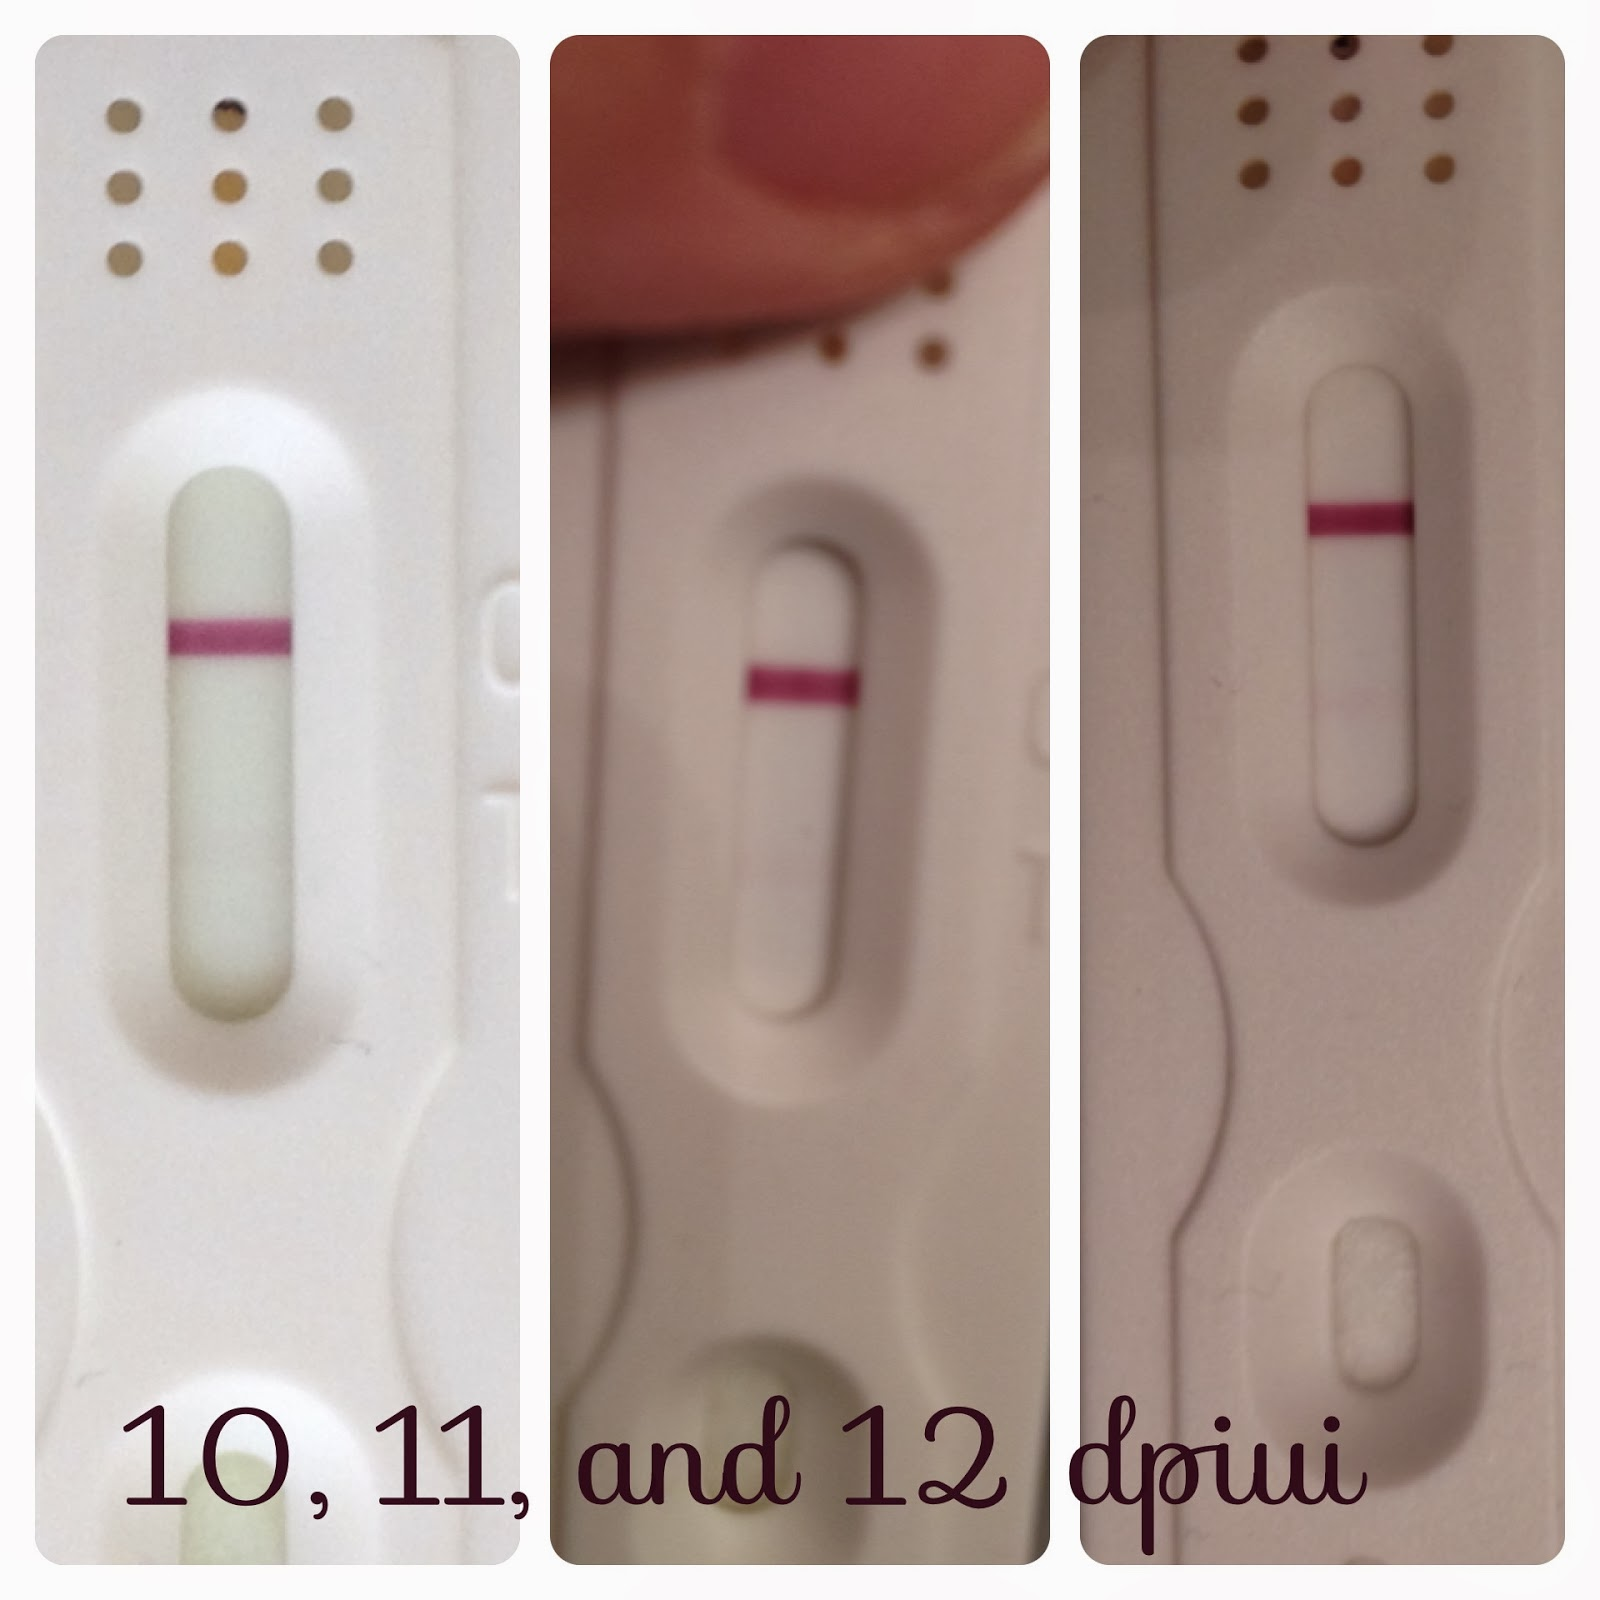 12 Days After Iui